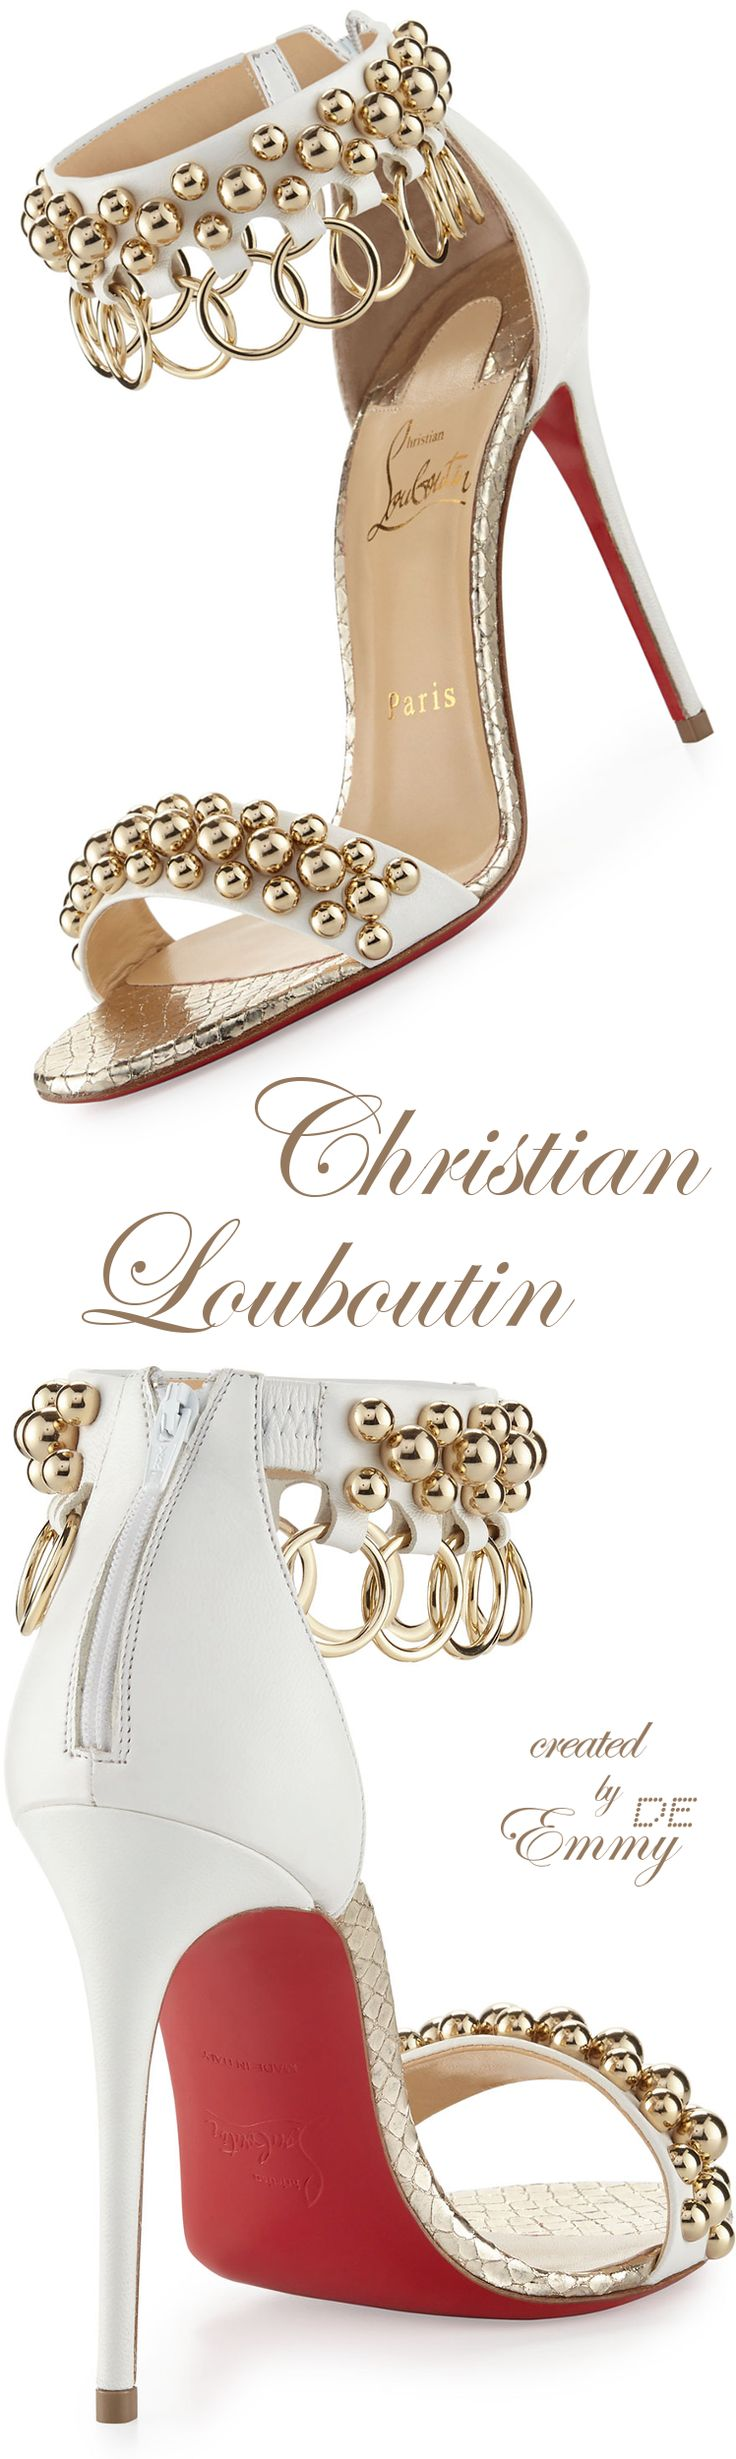 Emmy DE * Christian Louboutin 'Gypsandal' Ring-Trim Red Sole Sandal